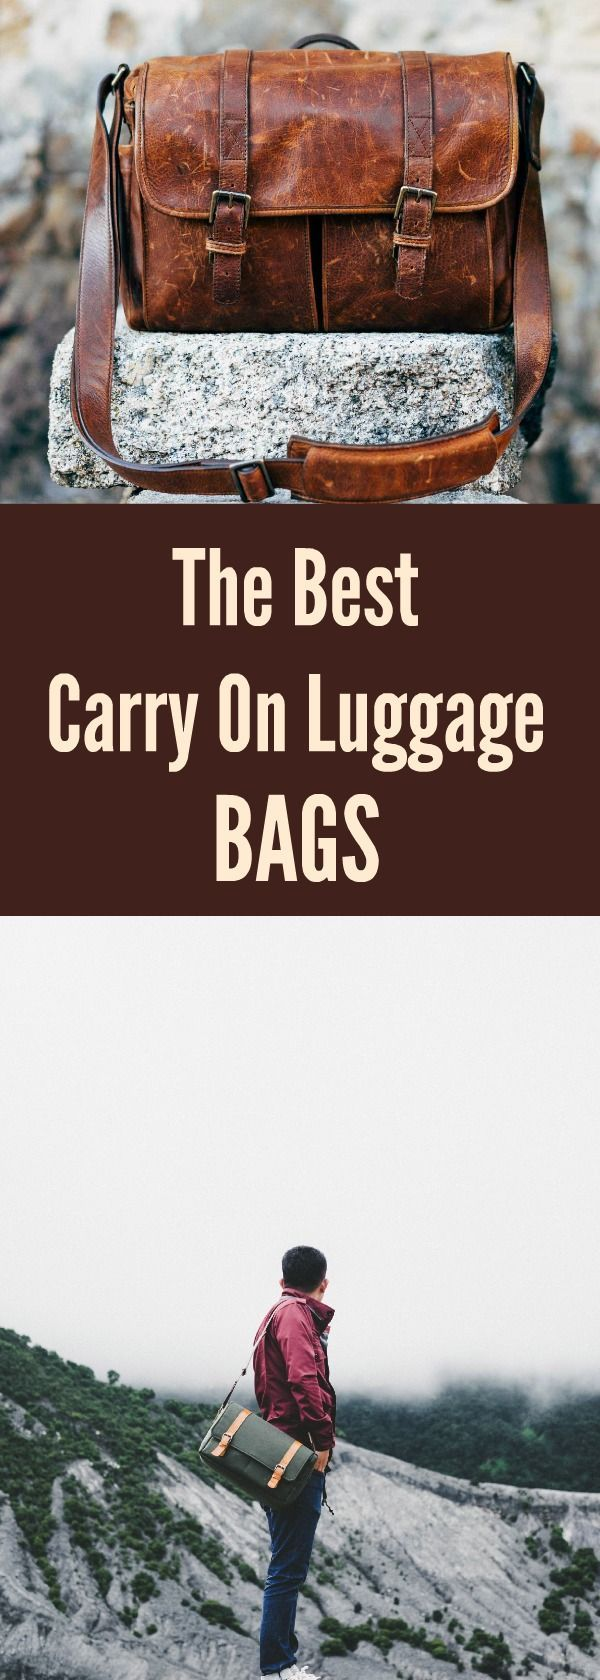 This list will help you when packing for your next flight. These are some of the best carry on luggage bags!